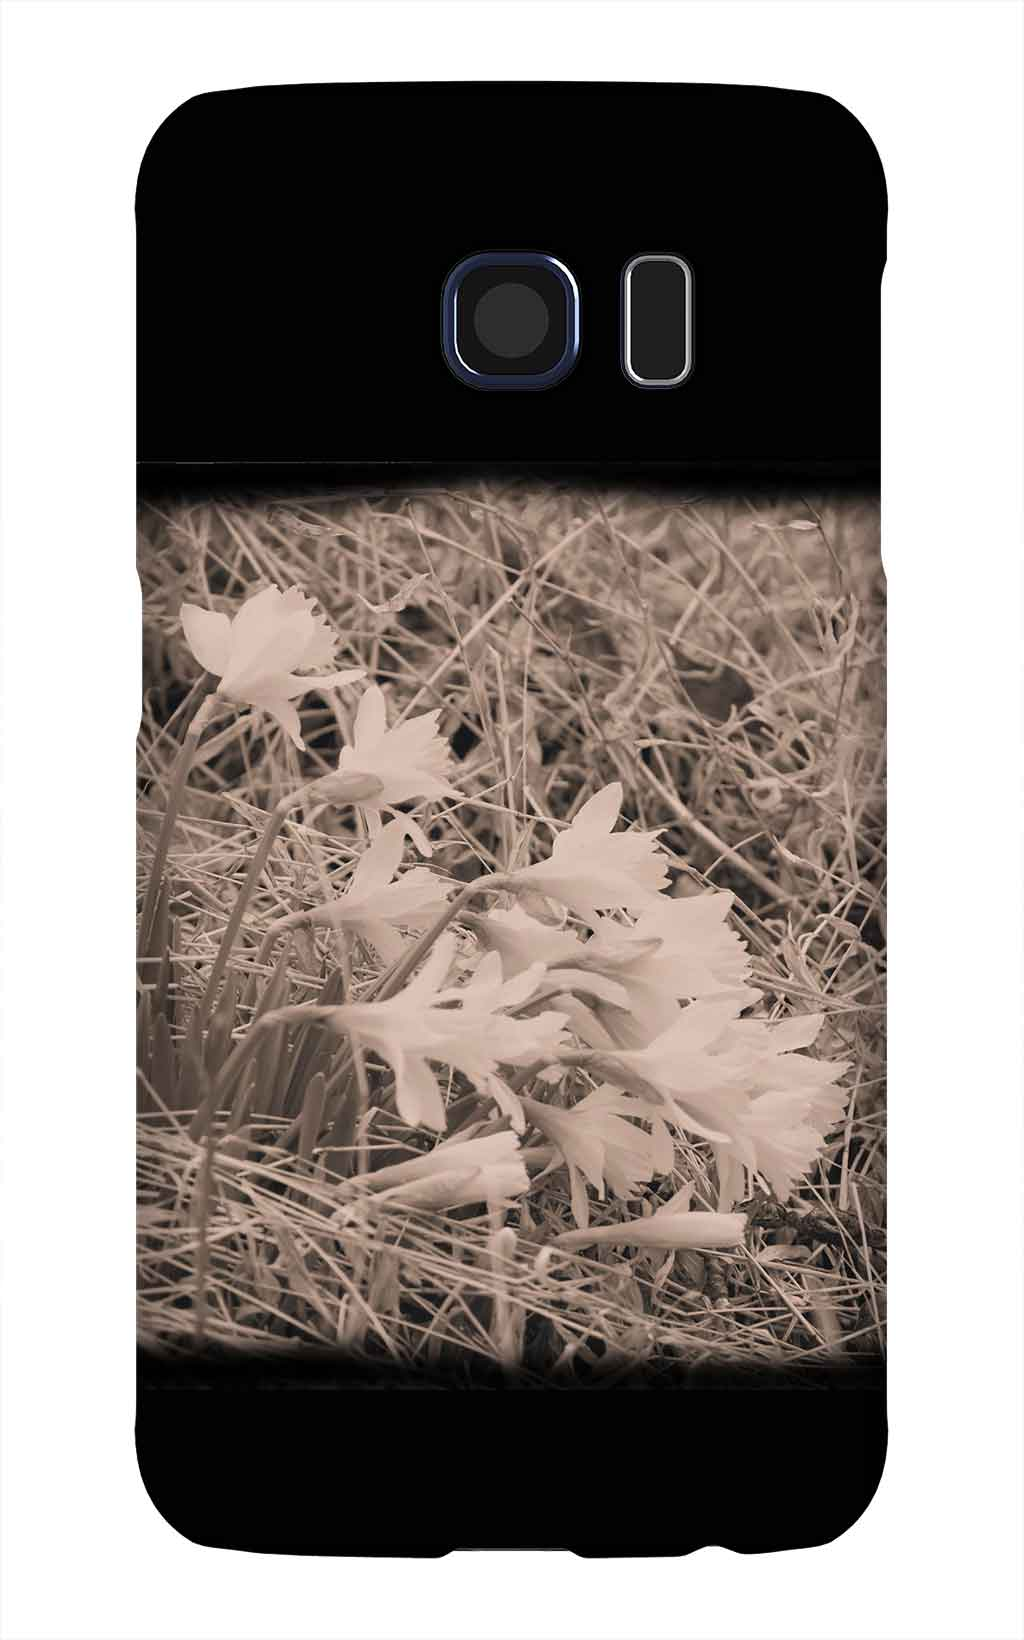 Product, Cellphone Case: Daffodils – Black and white image of daffodils